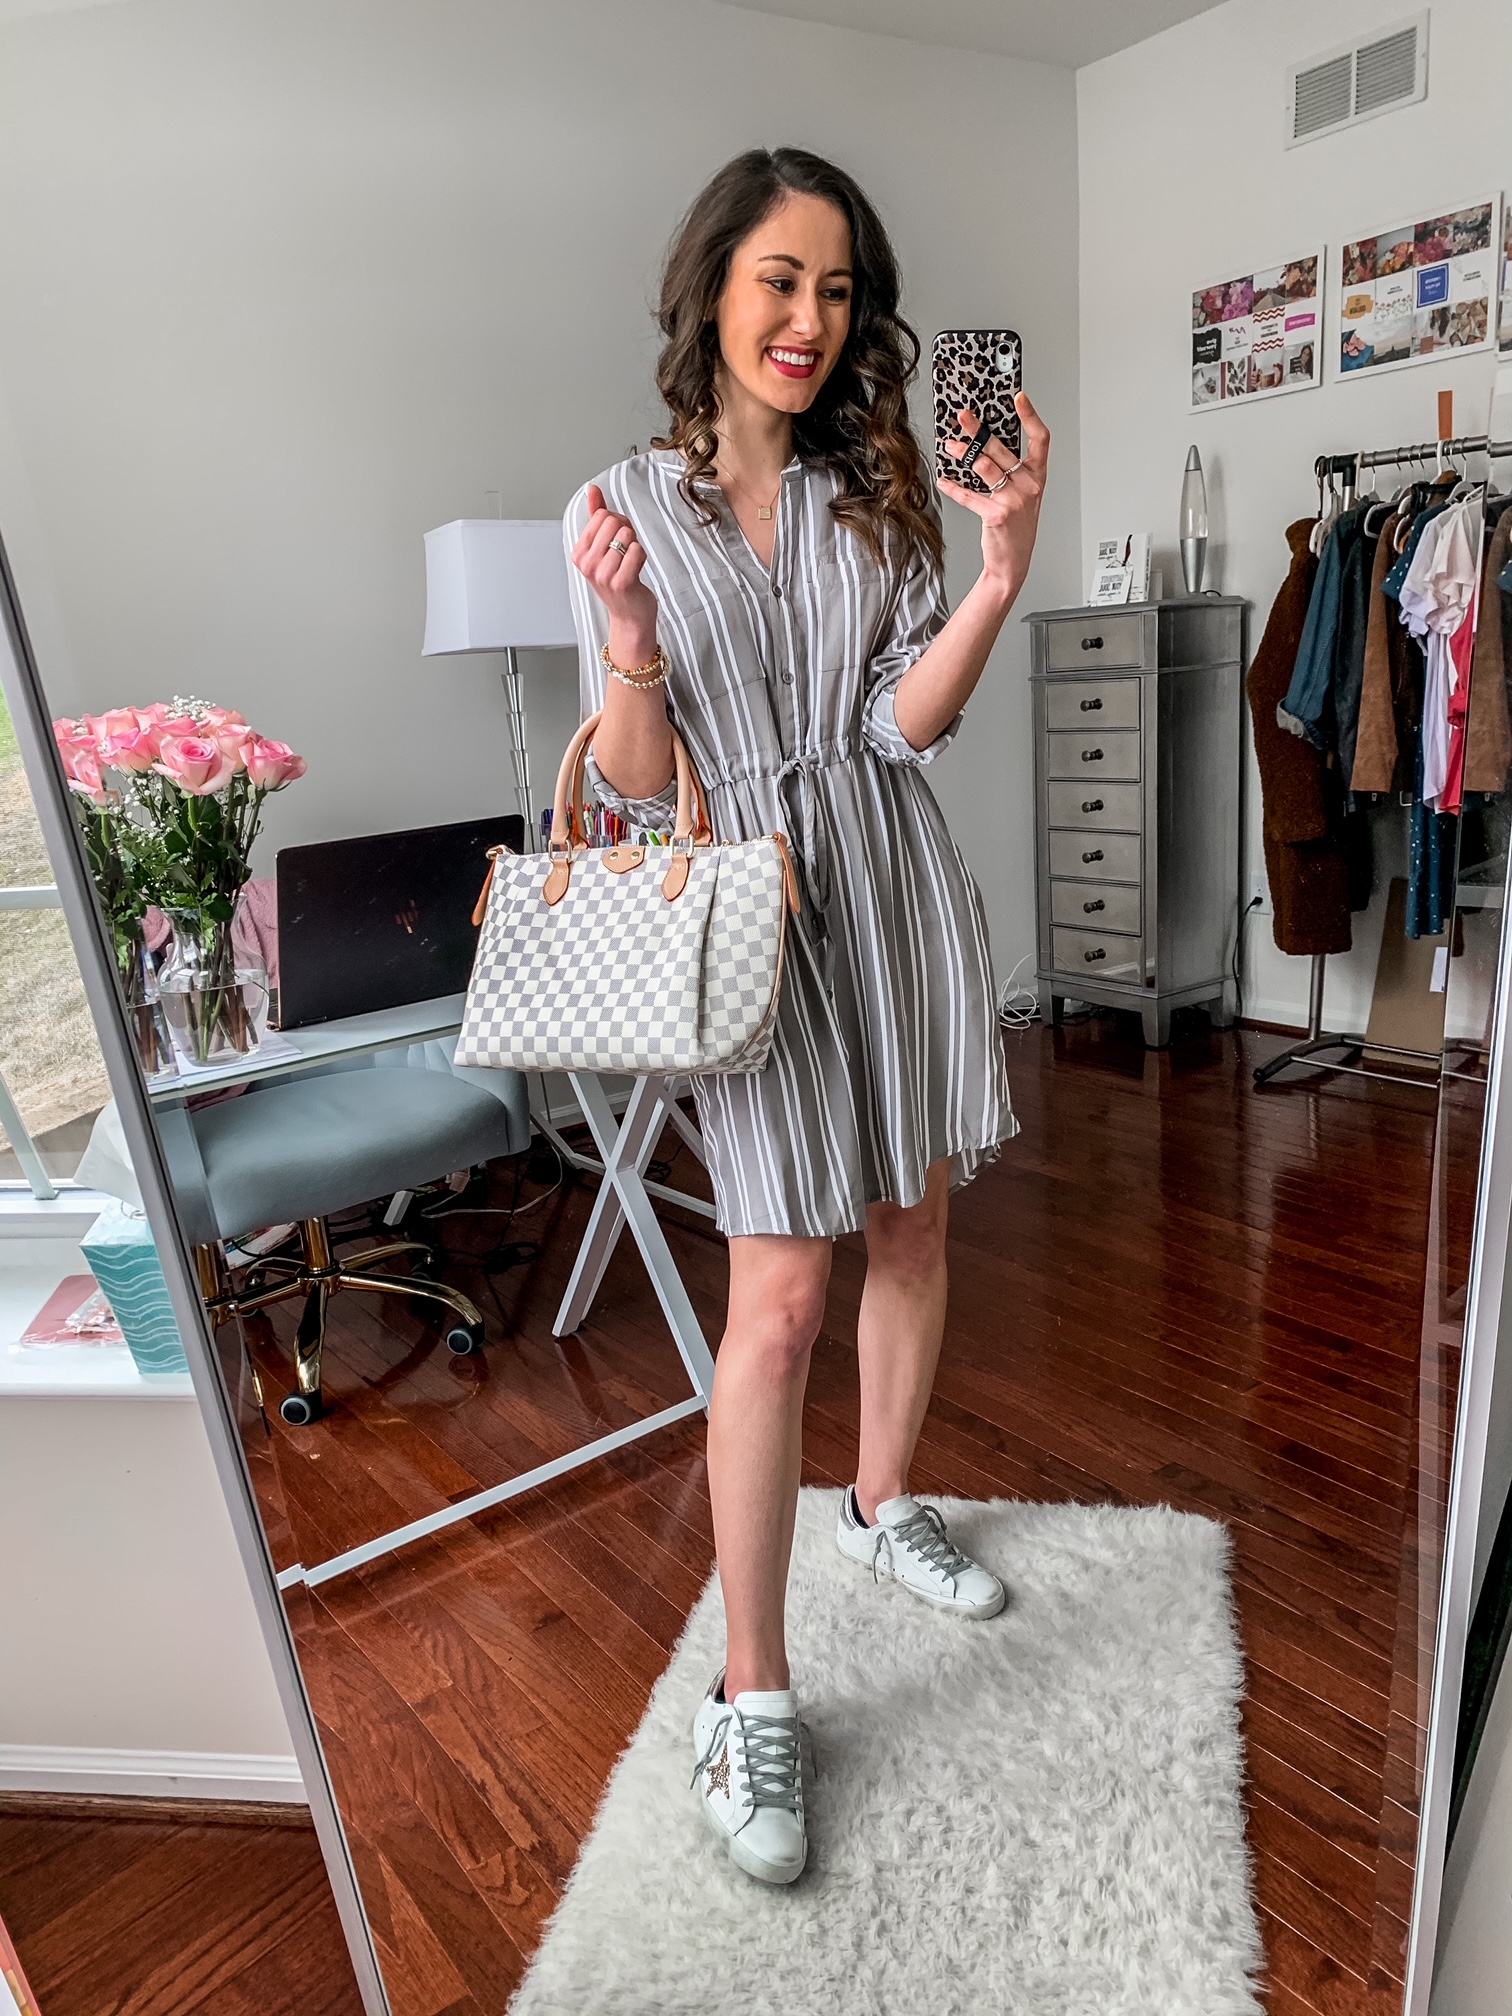 WALMART FASHION HAUL FOR SPRING - All under $50! - striped dress outfit with louis vuitton dupe bag